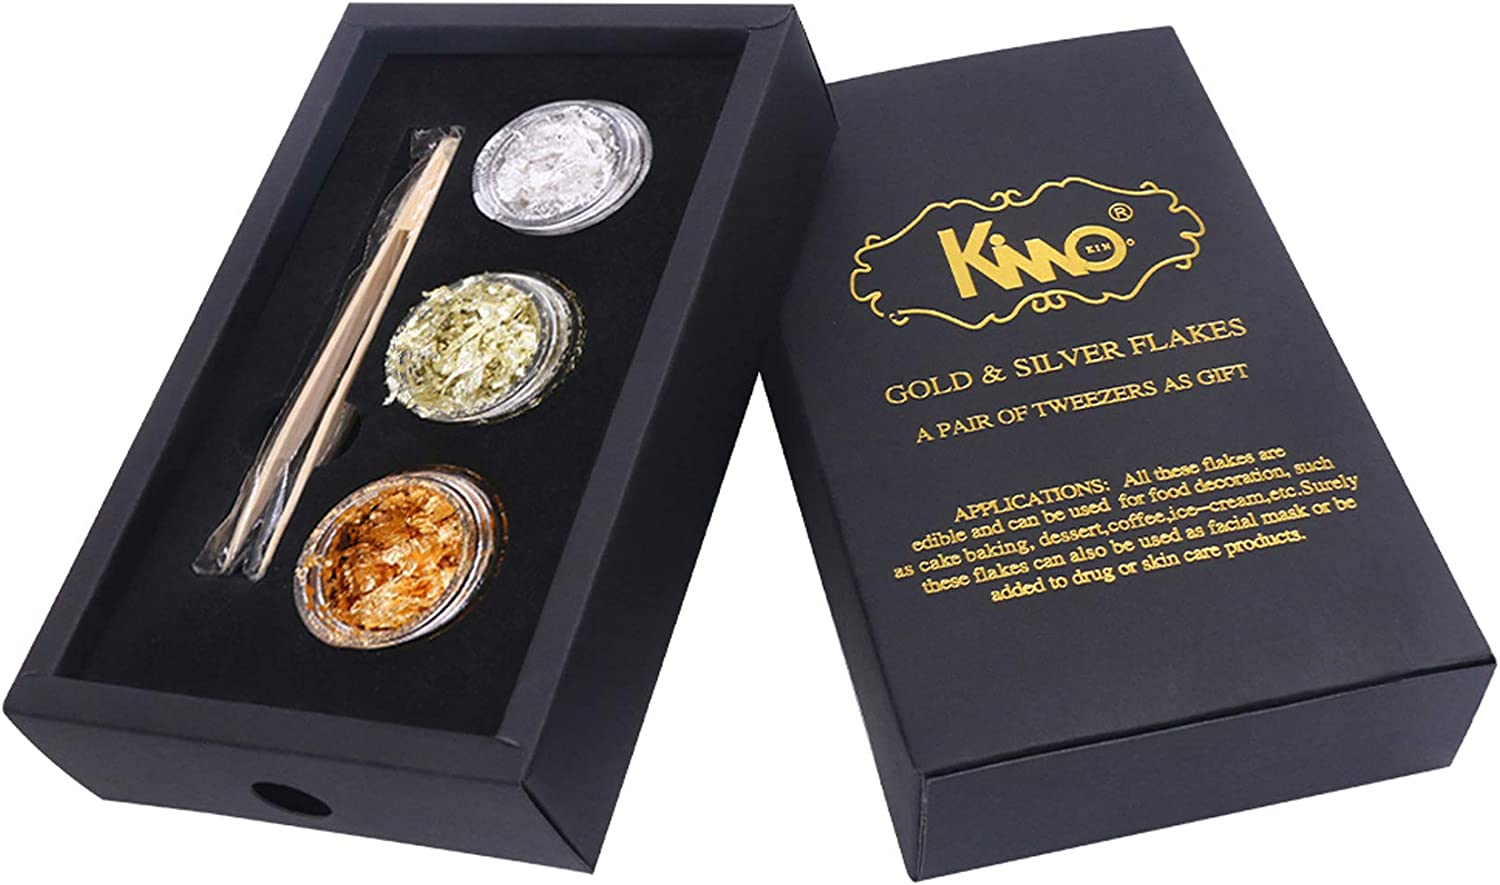 KINNO Edible 24K Yellow Gold Leaf Flakes - 18K Gold Flakes - Genuine Silver Flakes & Tweezers Set for for Makeup, Spa, Crafts, Gilding, Art, Bakery and Drink